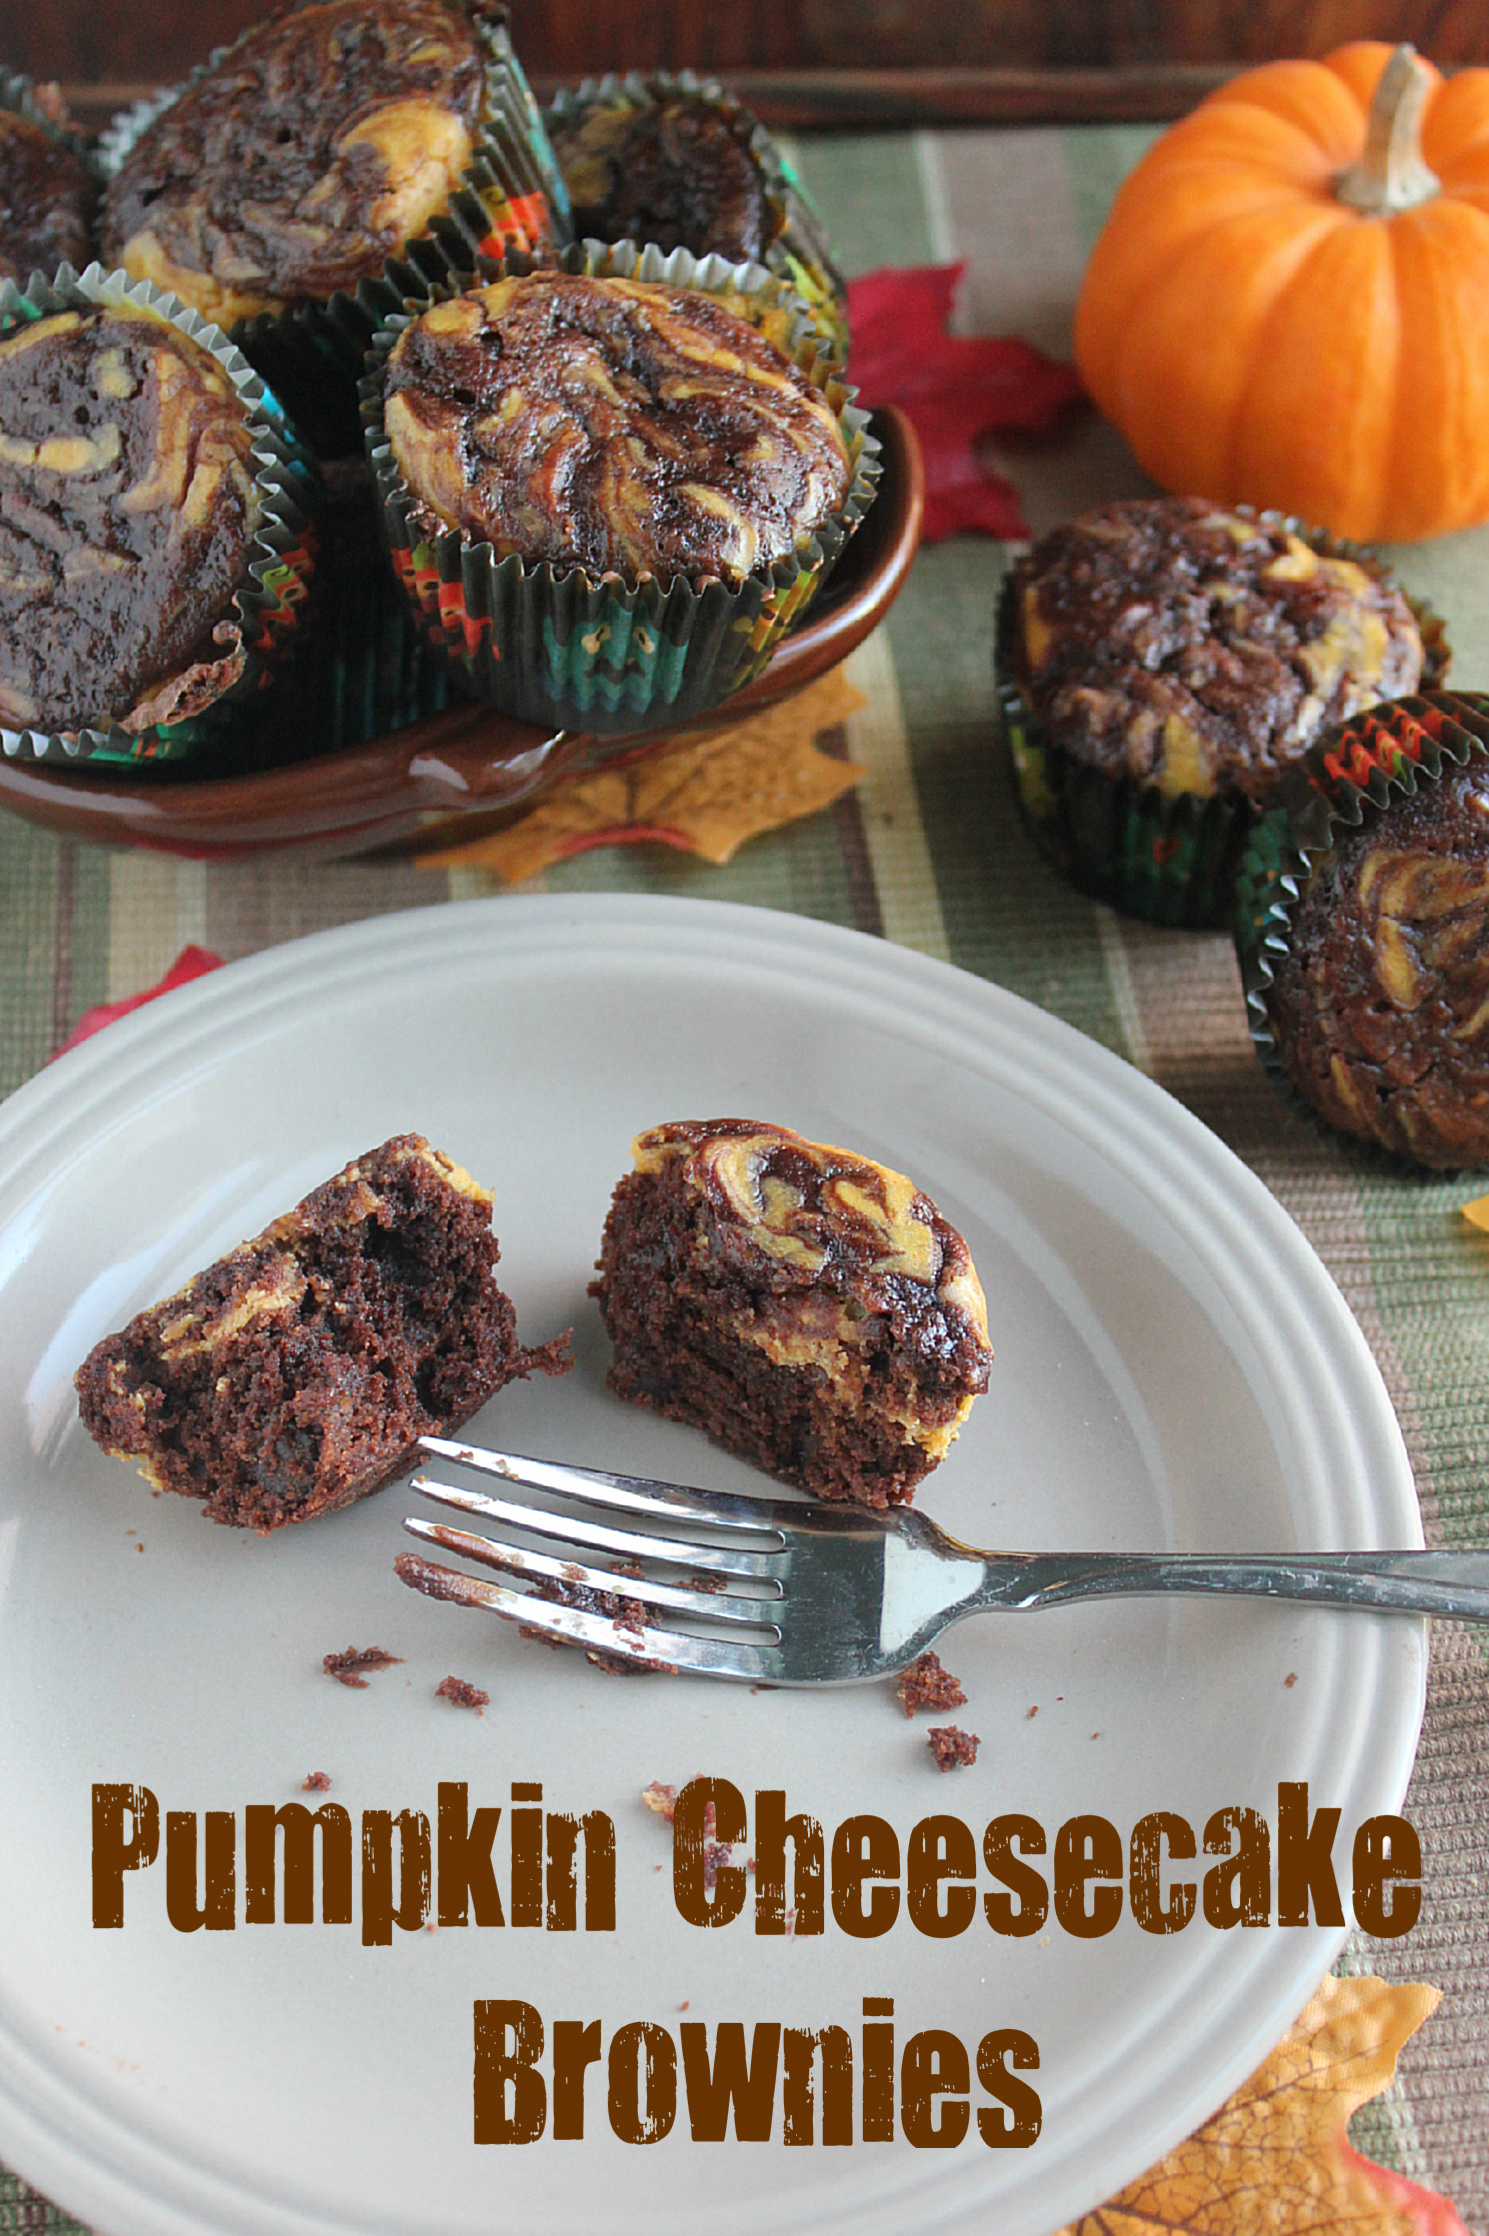 Pumpkin Cheesecake Brownies | And They Cooked Happily Ever After